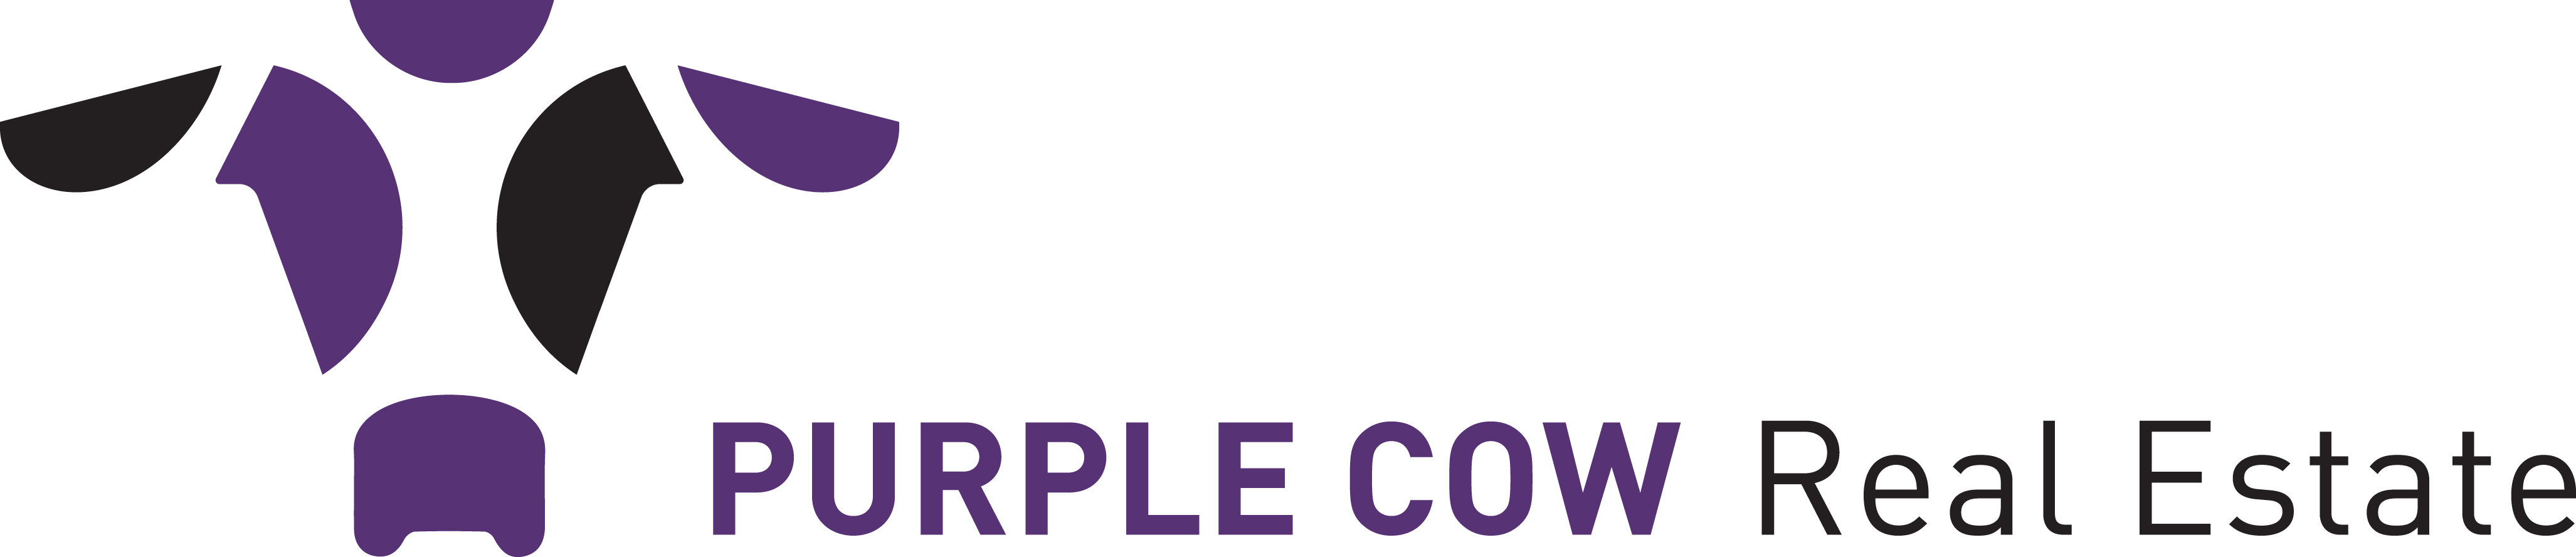 Purple Cow Real Estate, Springfield Lakes, 4300